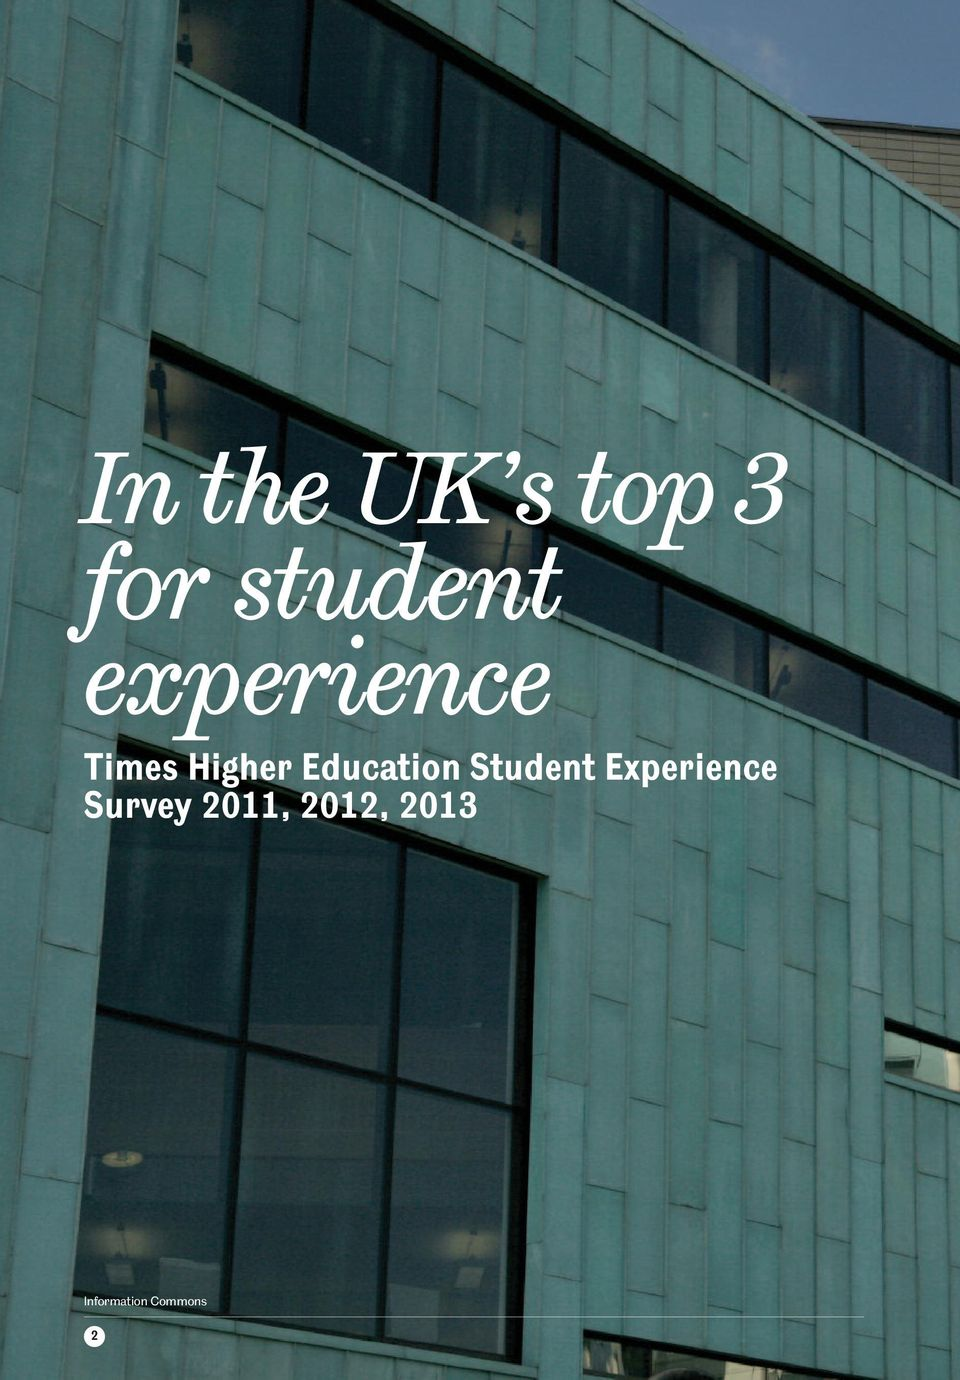 Education Student Experience